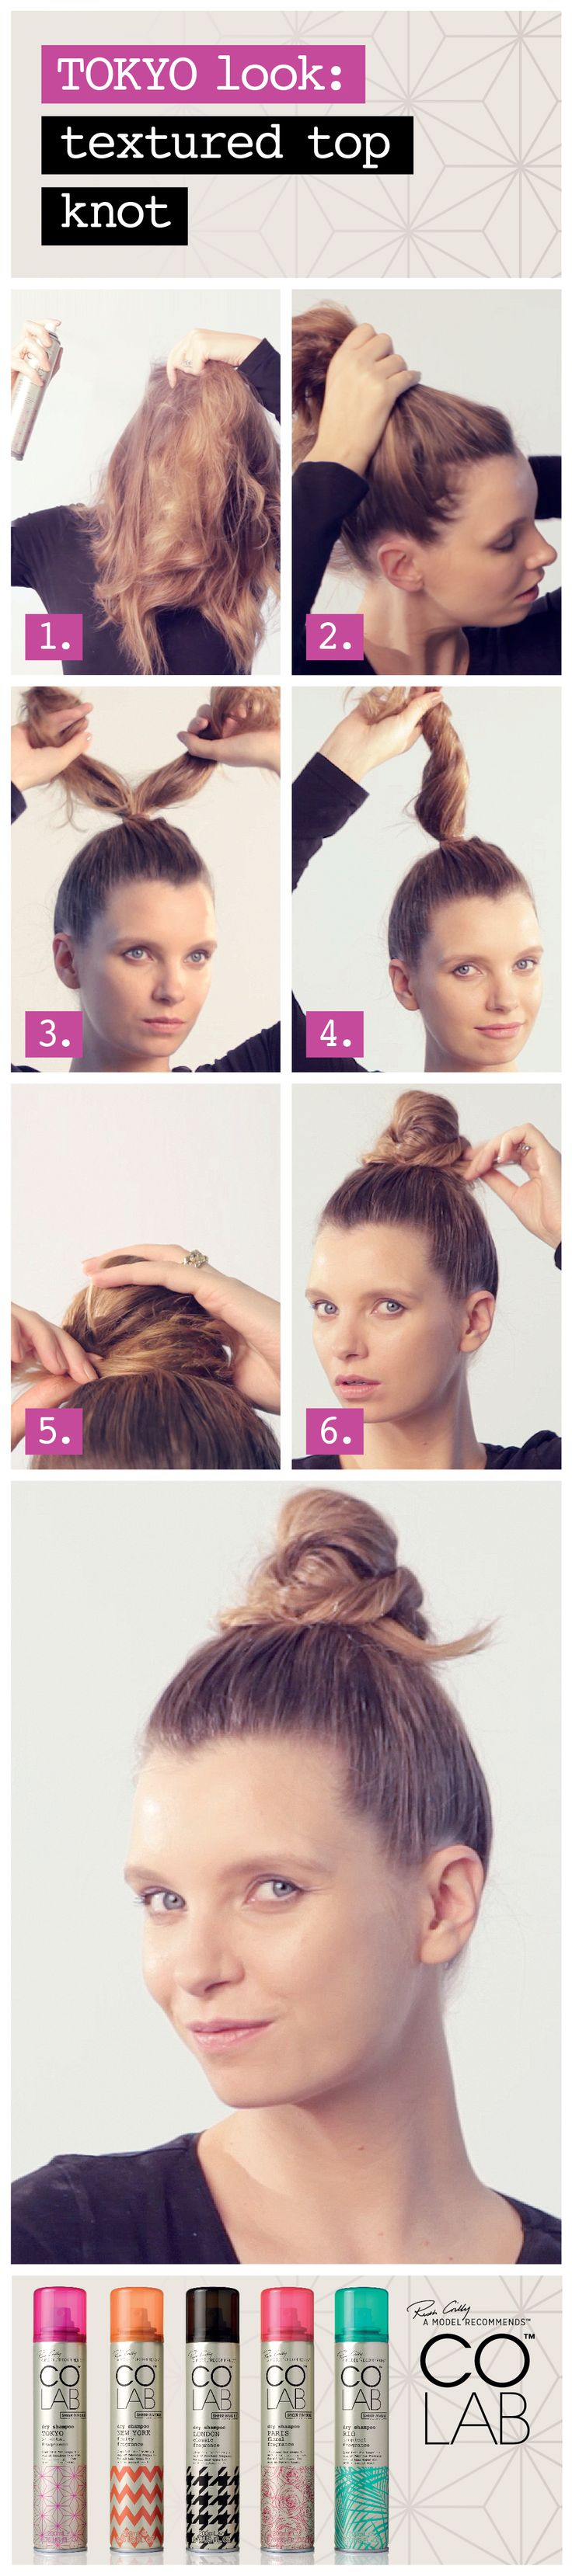 Learn how to create the perfect textured #TopKnot with COLAB dry shampoo, featuring COLAB sheer + invisible #Tokyo.  Available at Superdrug, Feel Unique & Beauty Mart (UK),  Penneys (Ireland),  London Drugs, Lawtons Drugs & Pharmasave (Canada), Jean Coutu & select Uniprix, Brunet & Familiprix (Quebec).  www.colab-hair.com #Hair #Beauty #HairTutorial #HowTo #RuthCrilly #ModelRecommends #ColabHairConvert